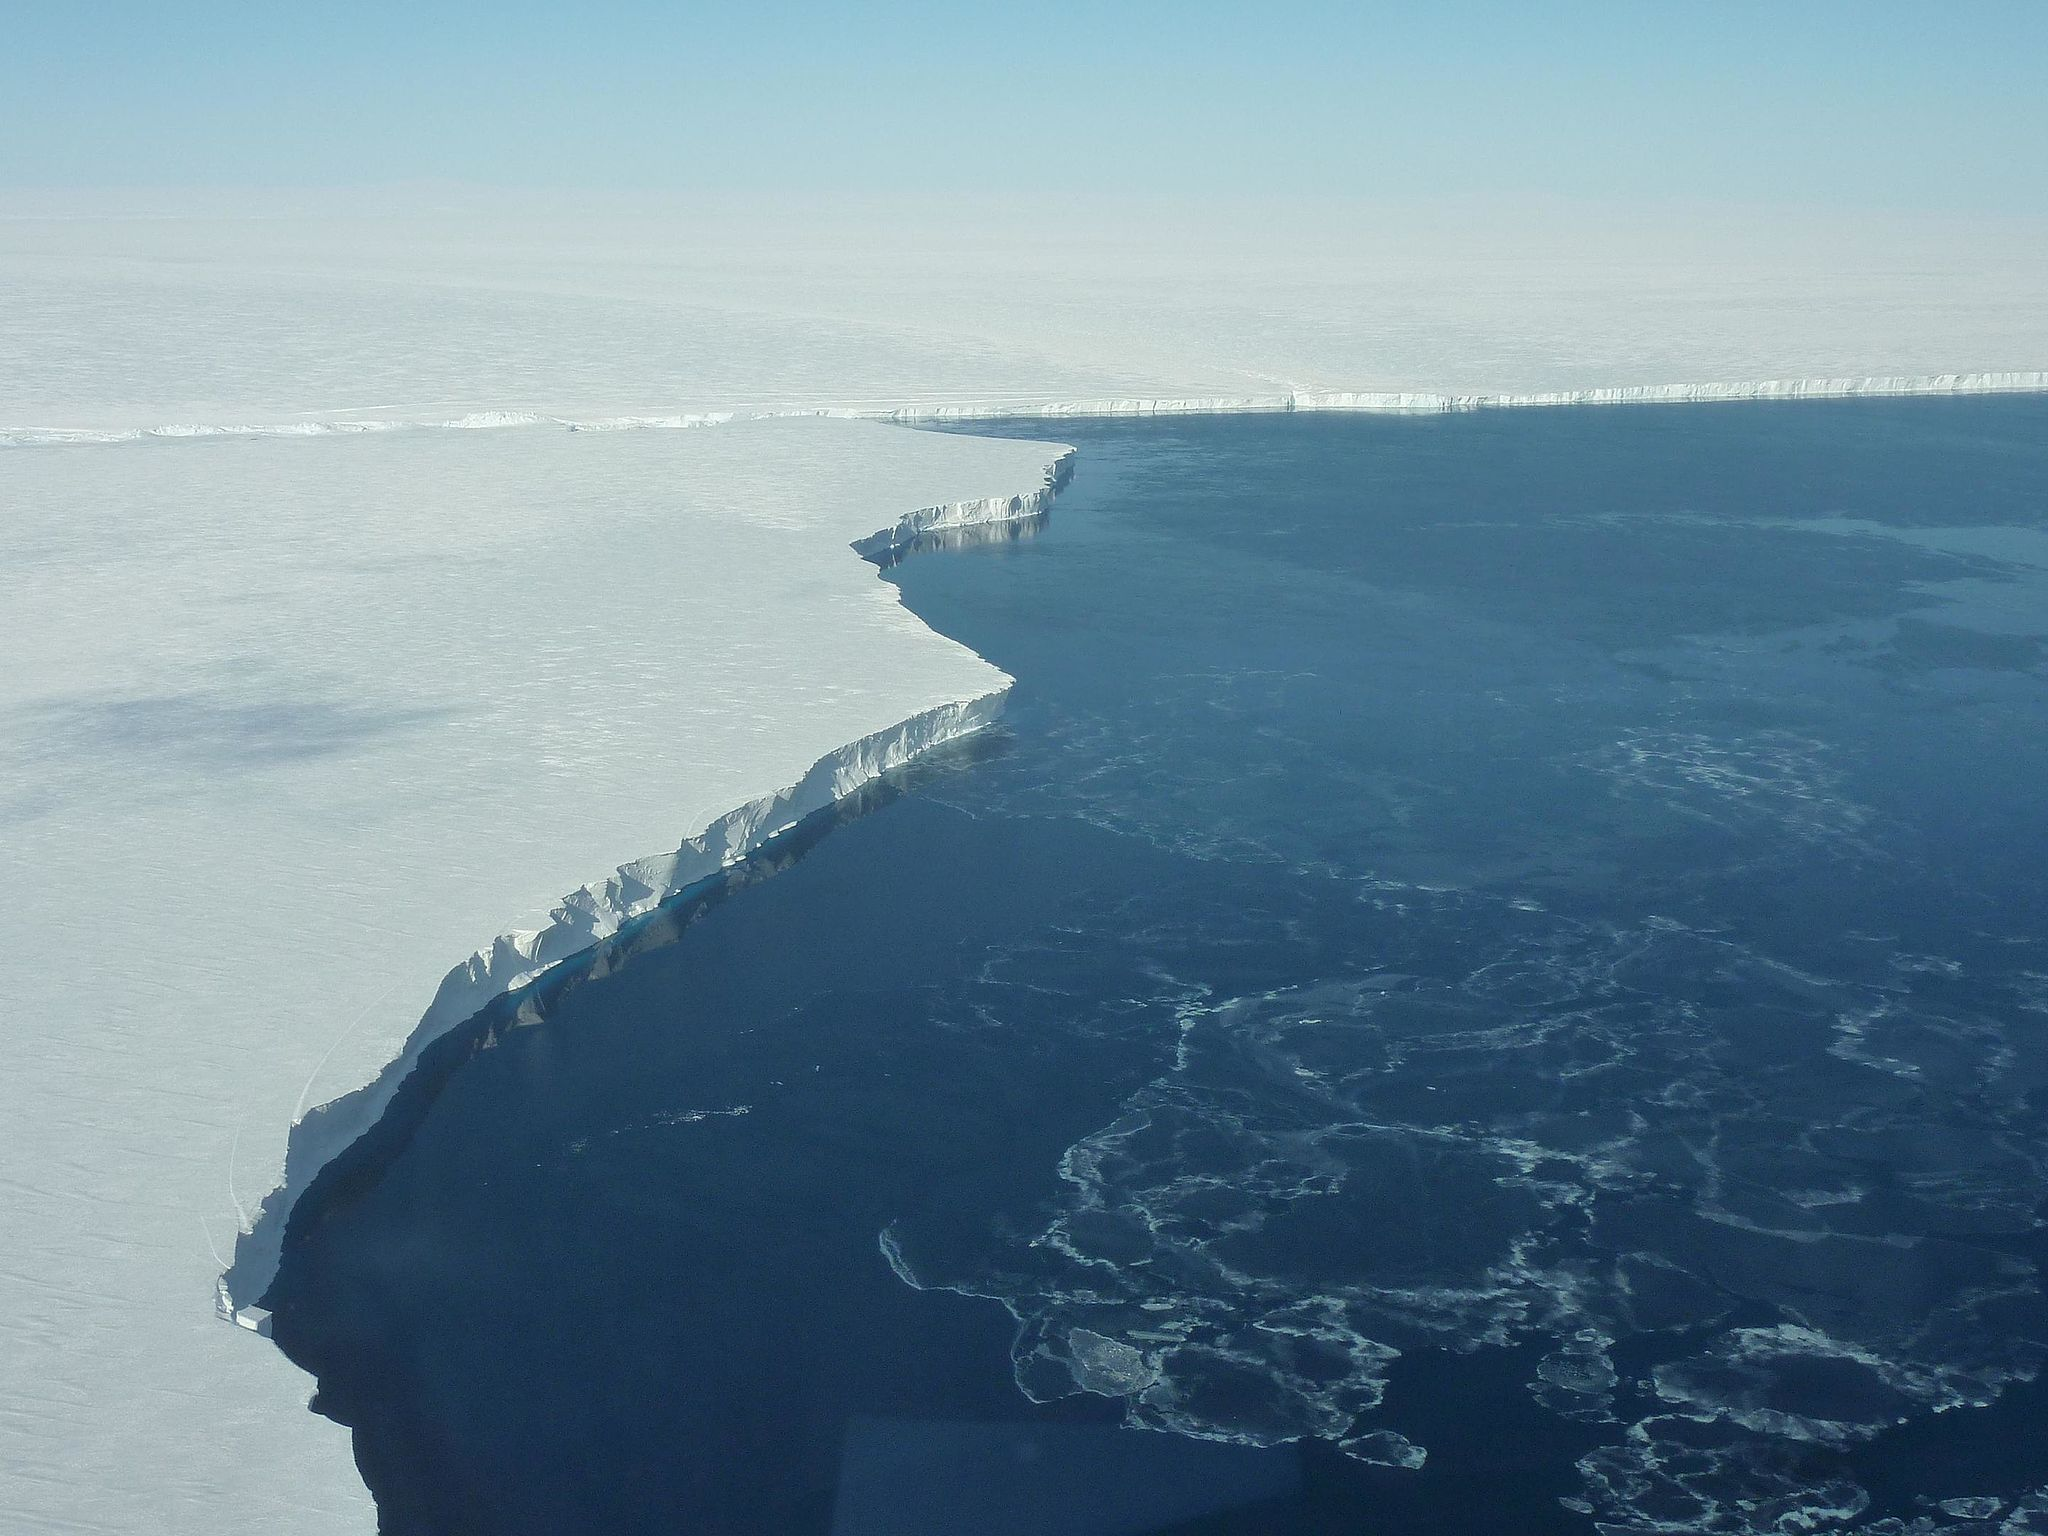 Photo caption: Getz Ice Shelf, Antarctica (source:  http://www.nasa.gov/mission_pages/icebridge/multimedia/fall10/GetzIceShelf.html )